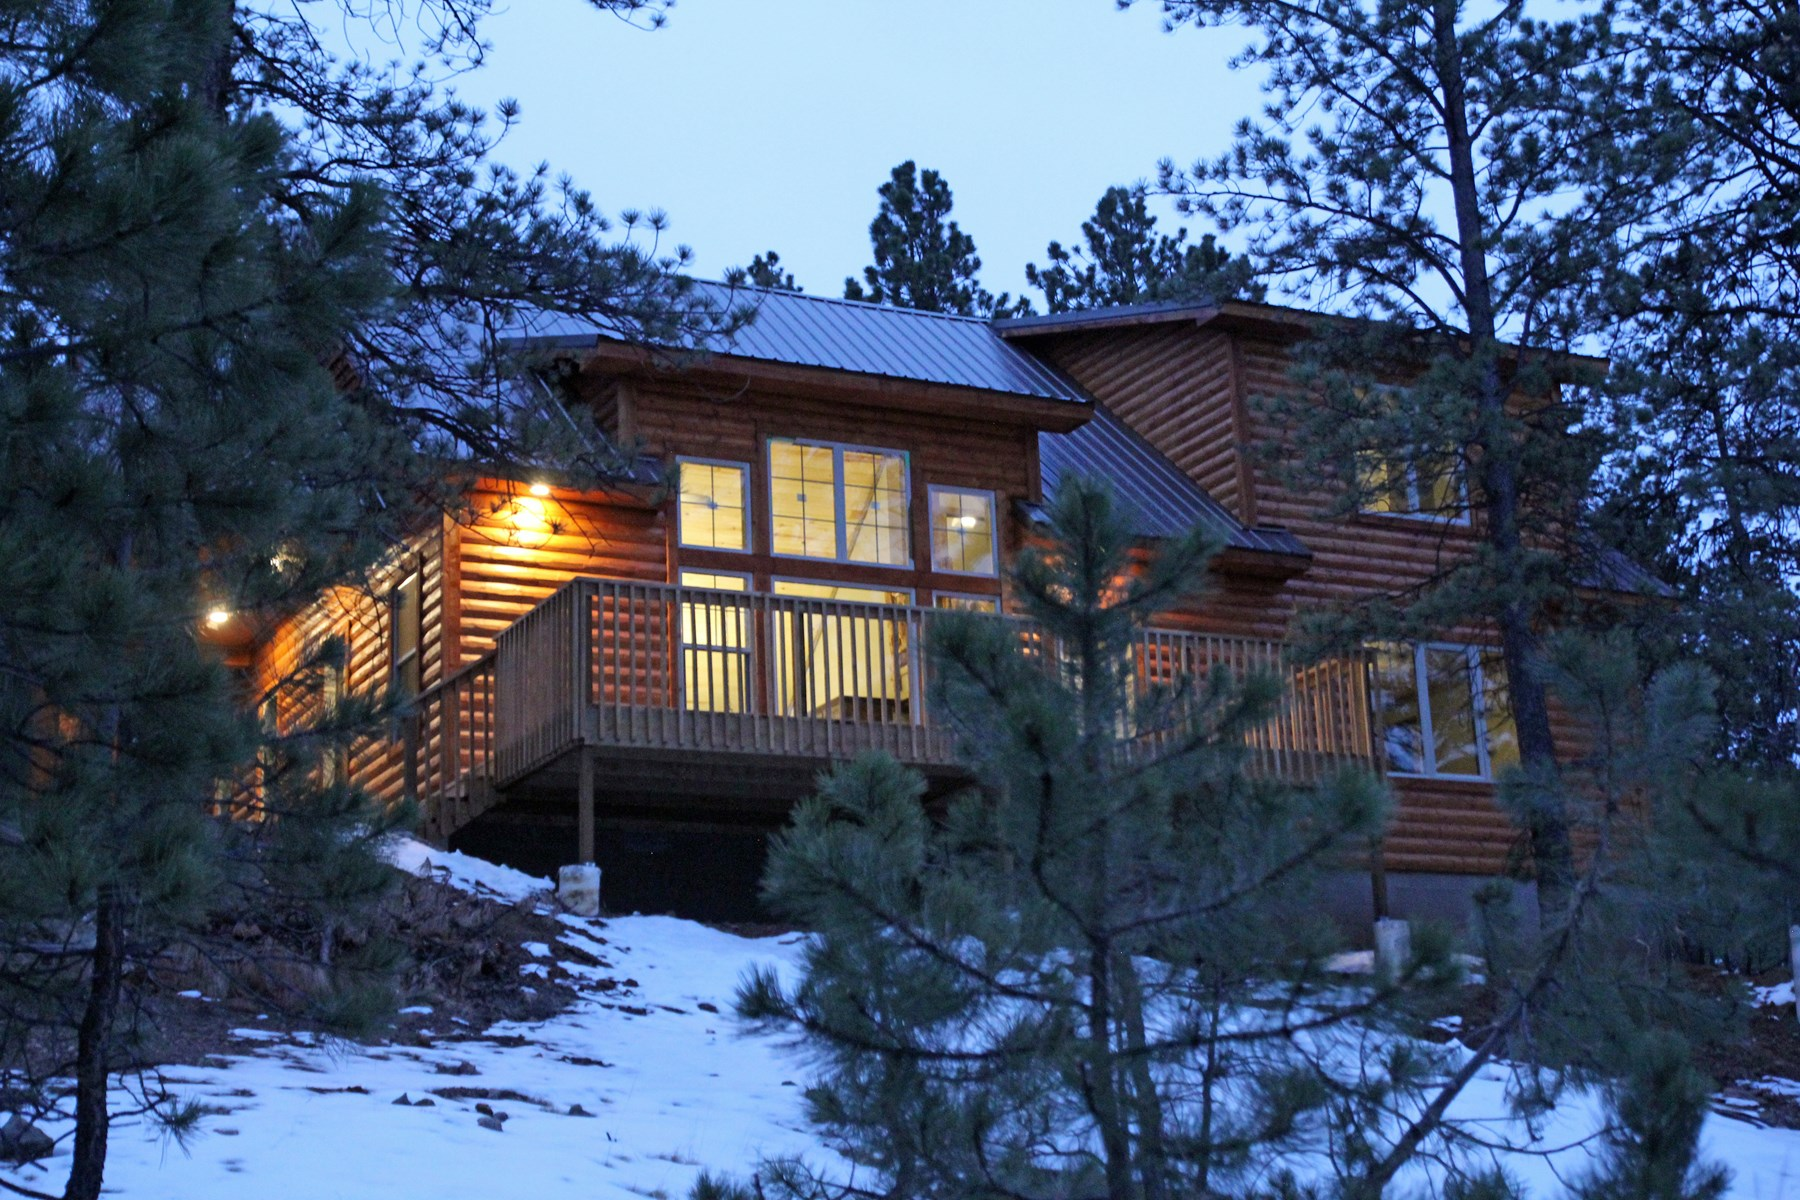 New Log Sided Home Cabin Colorado Mtns Acreage Pine Trees